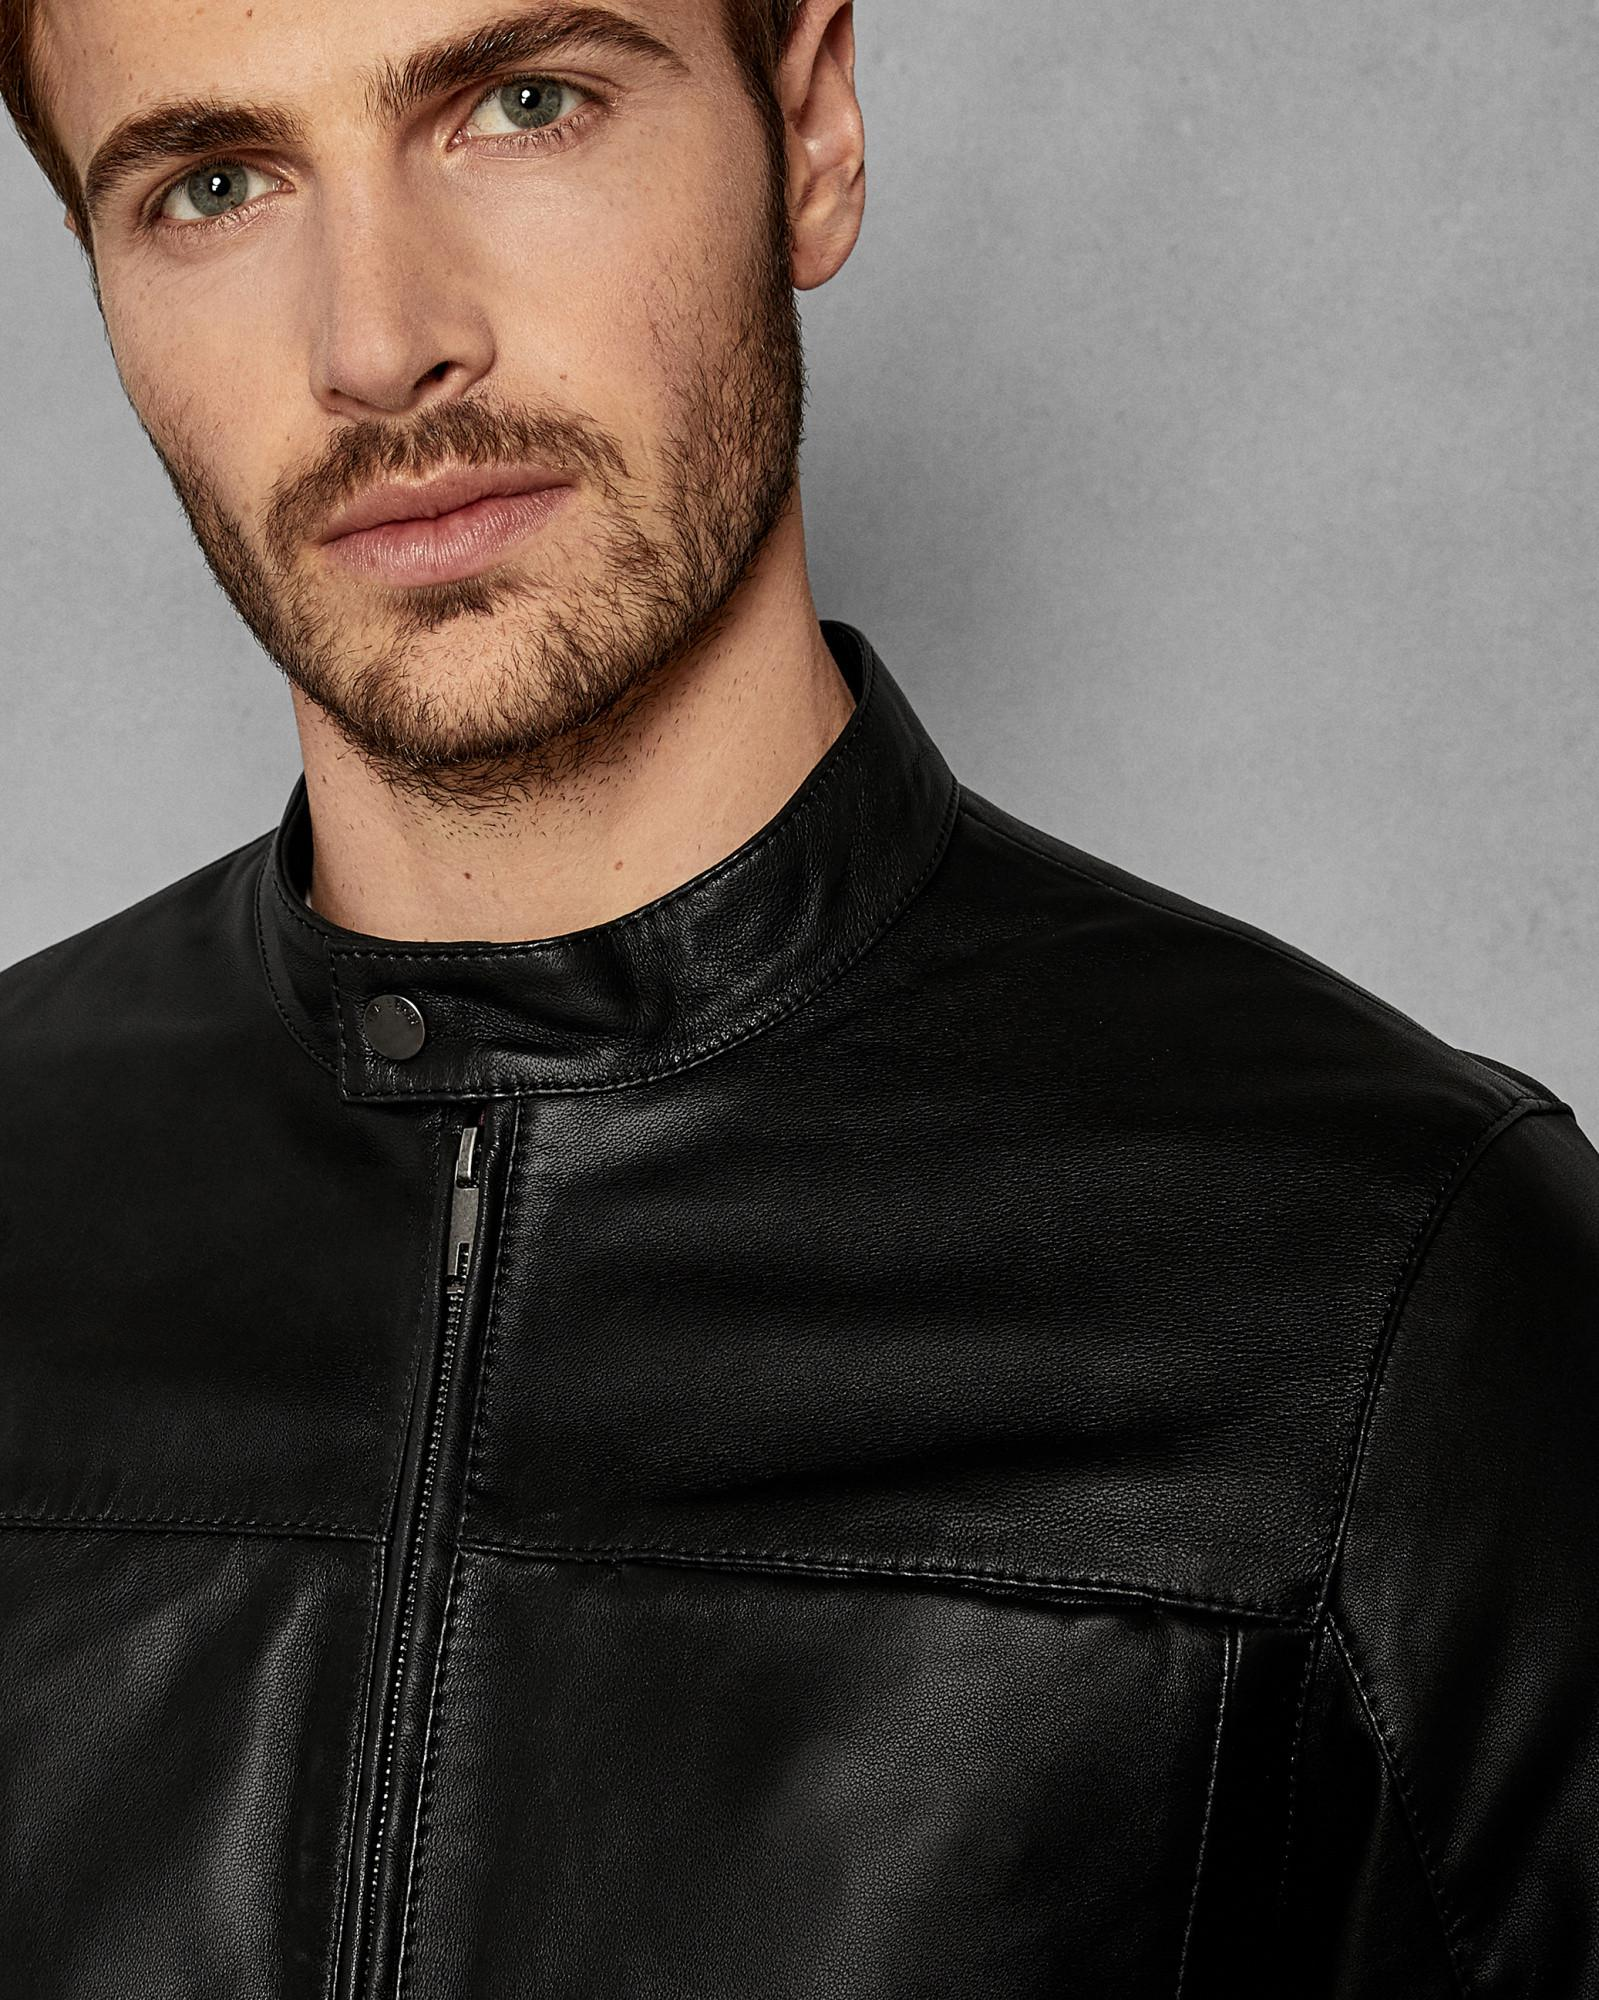 bd51da936 Ted Baker Leather Jacket in Black for Men - Lyst